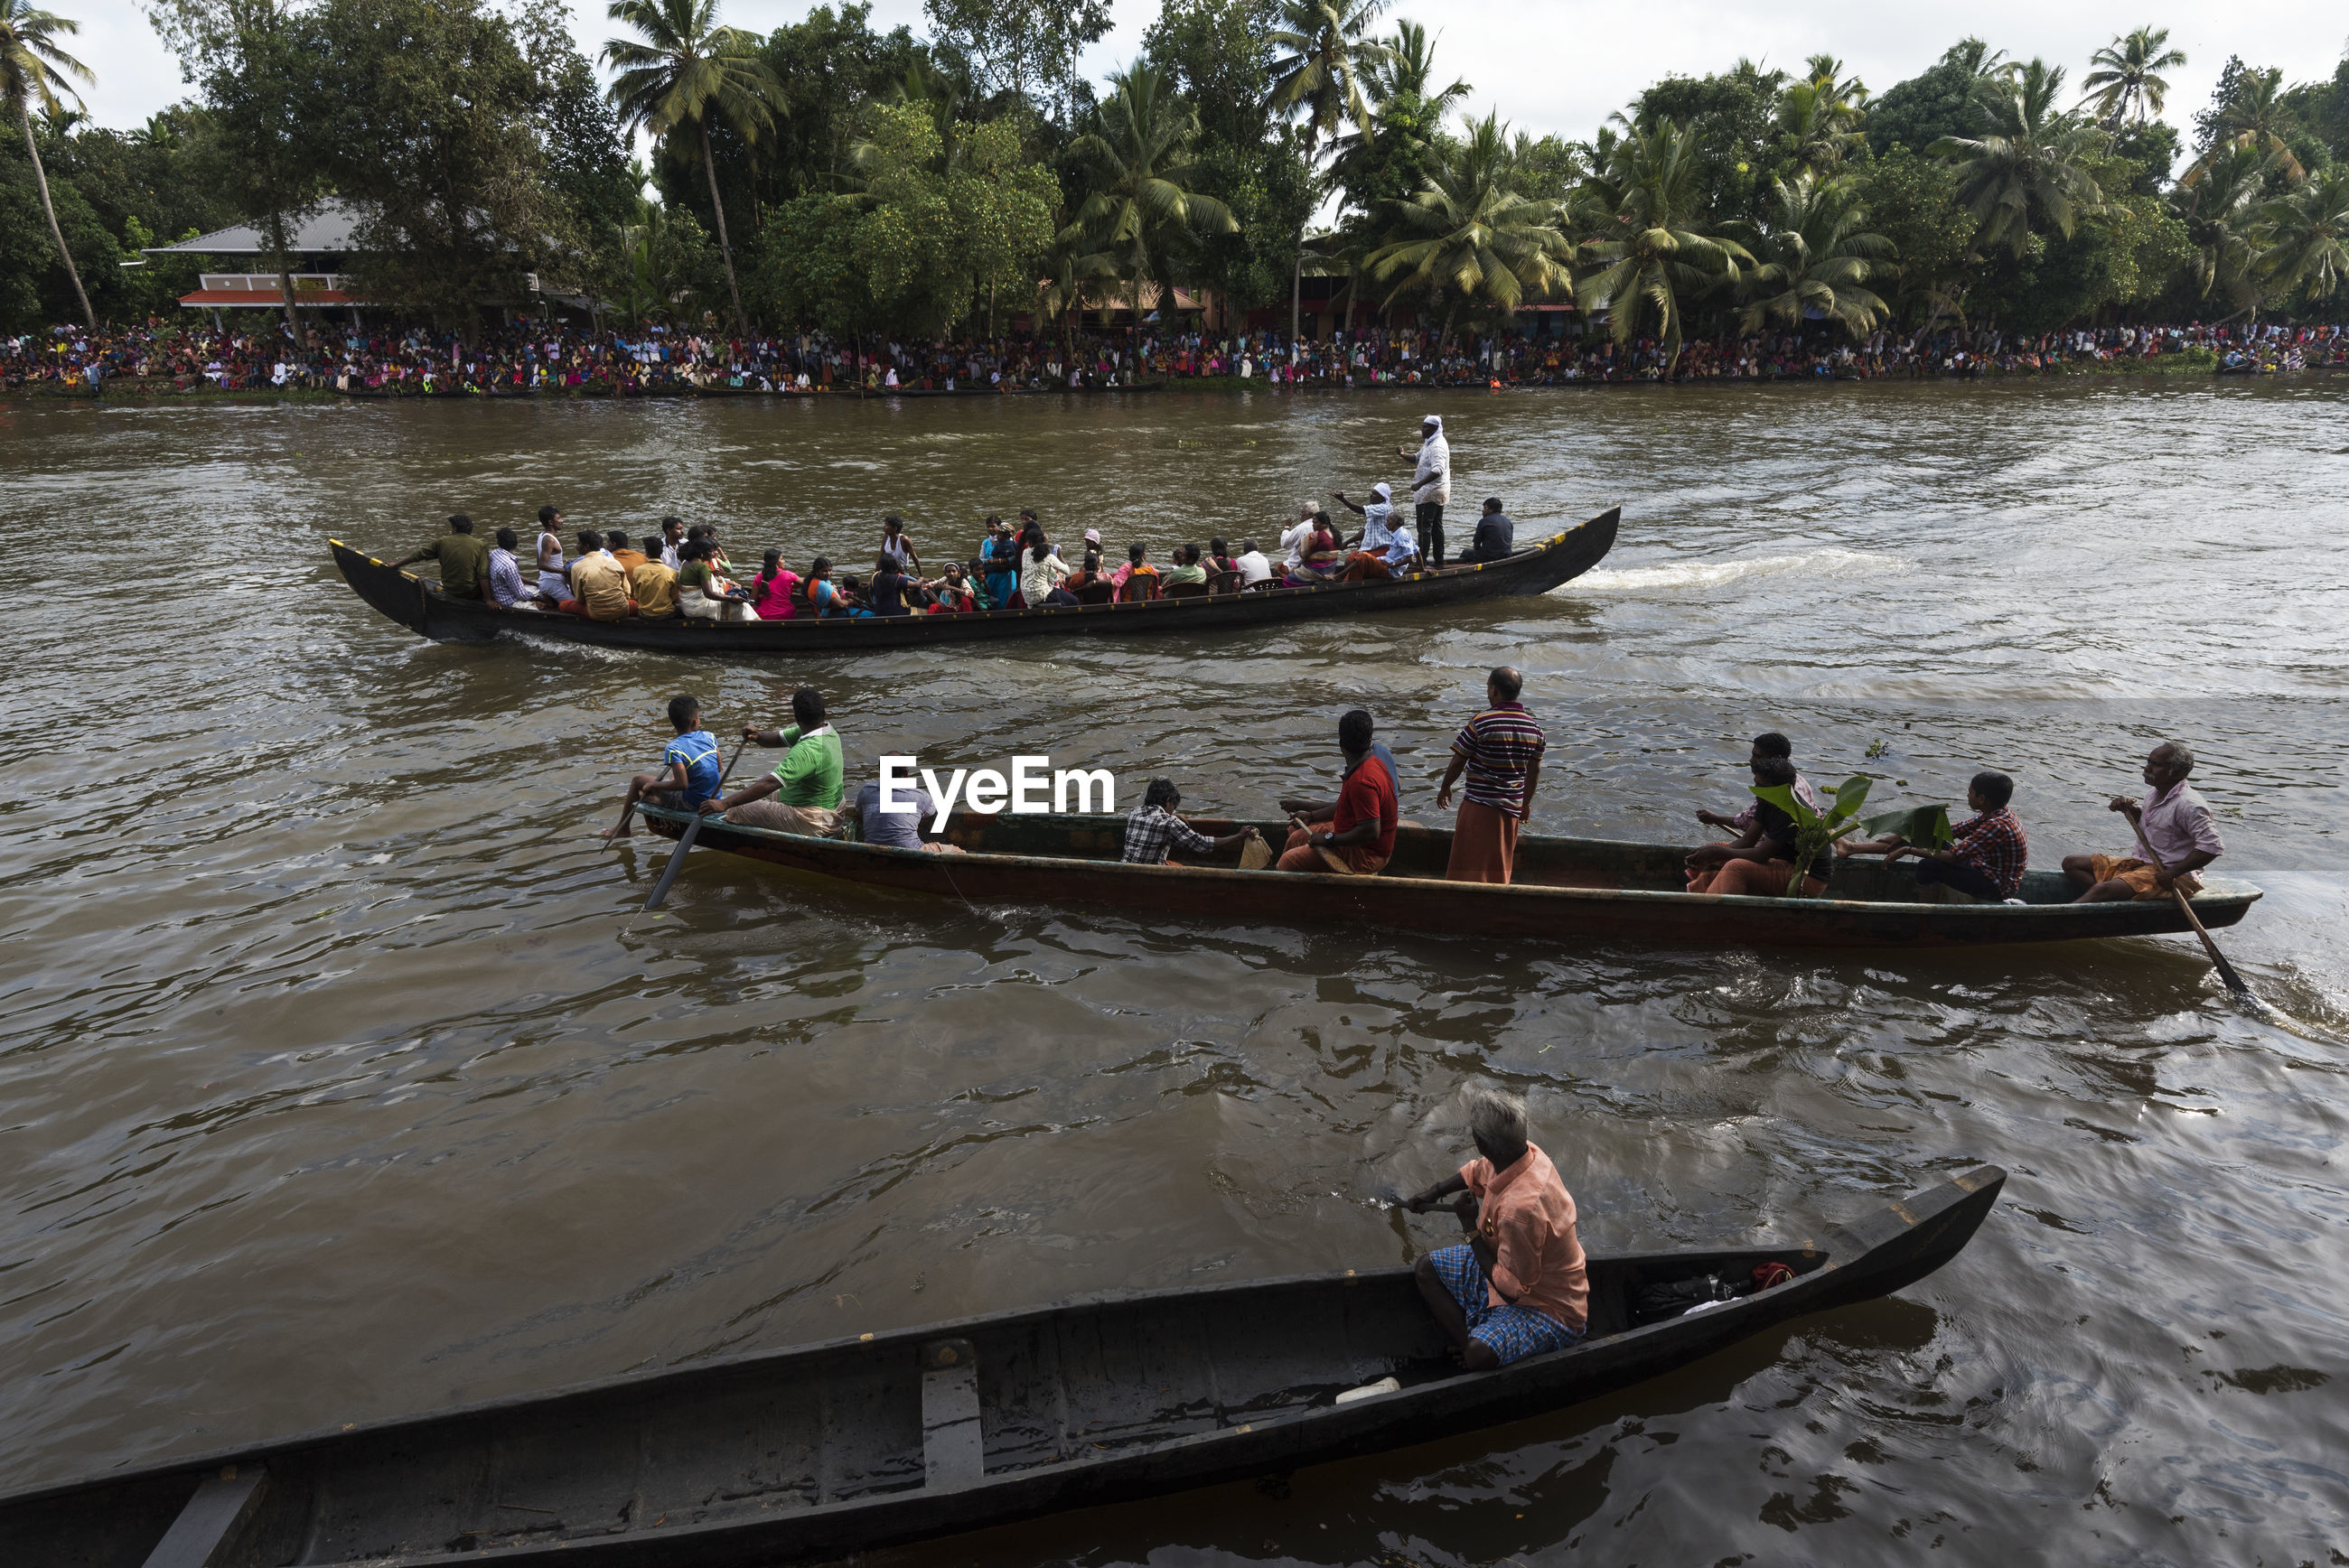 PEOPLE IN BOAT SAILING ON RIVER